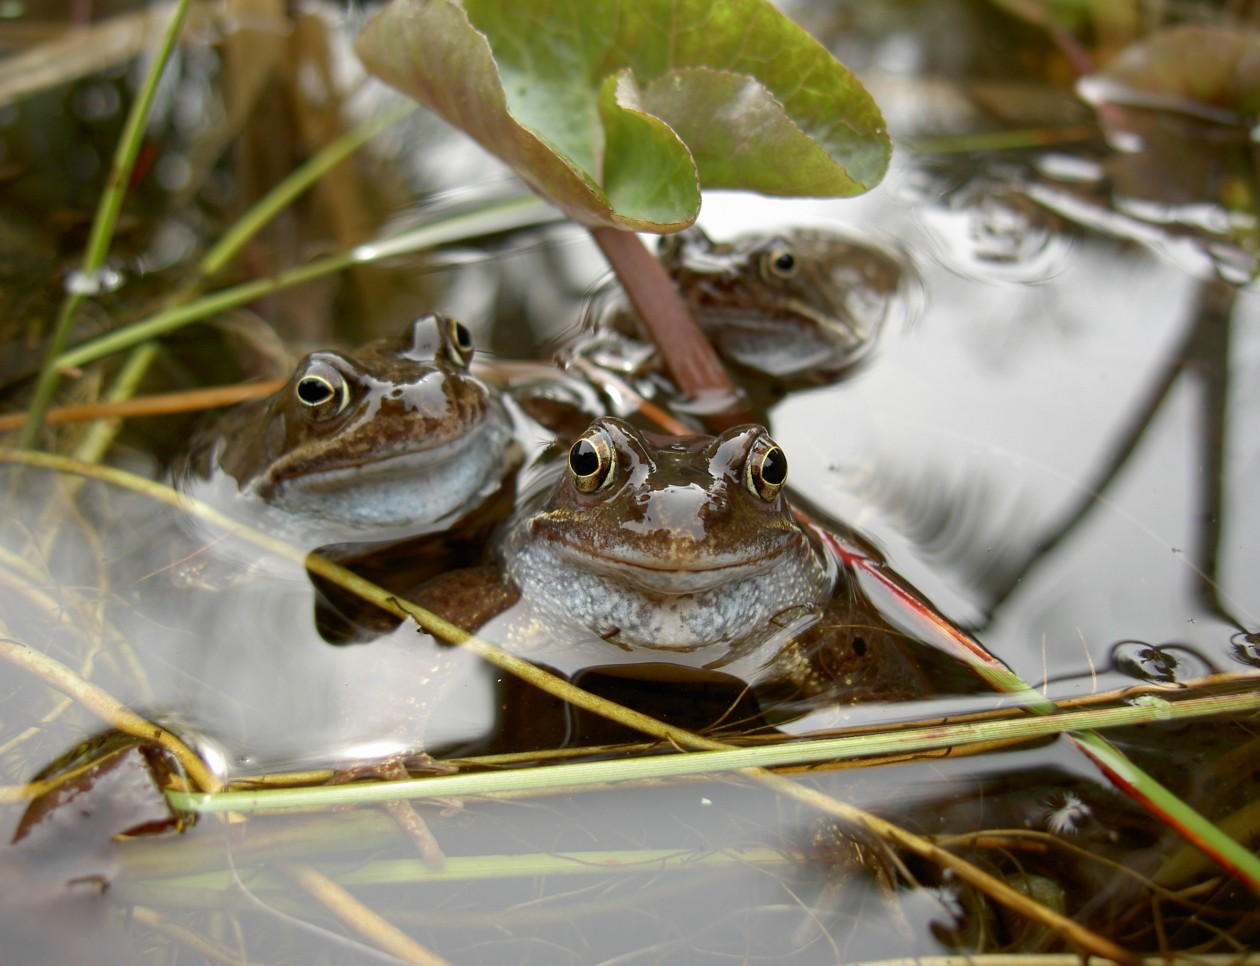 Heligan toads